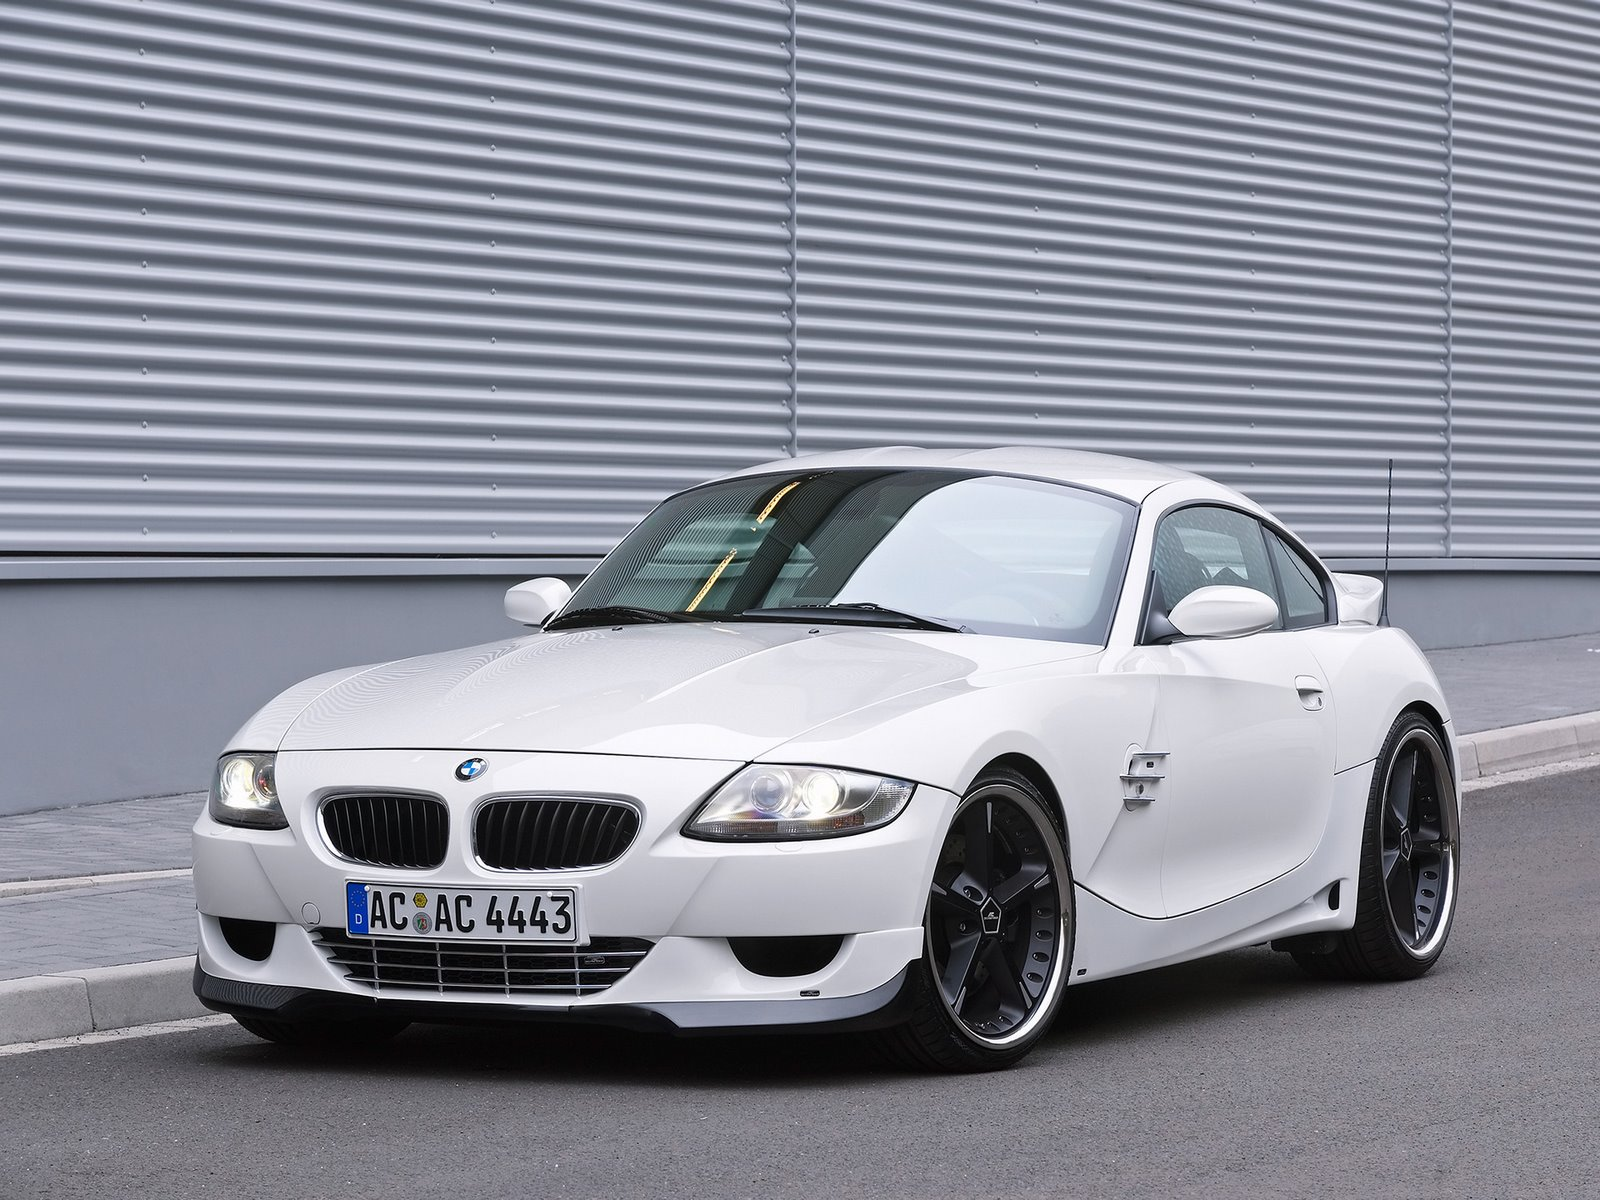 2006 BMW Z4 M Coupe picture